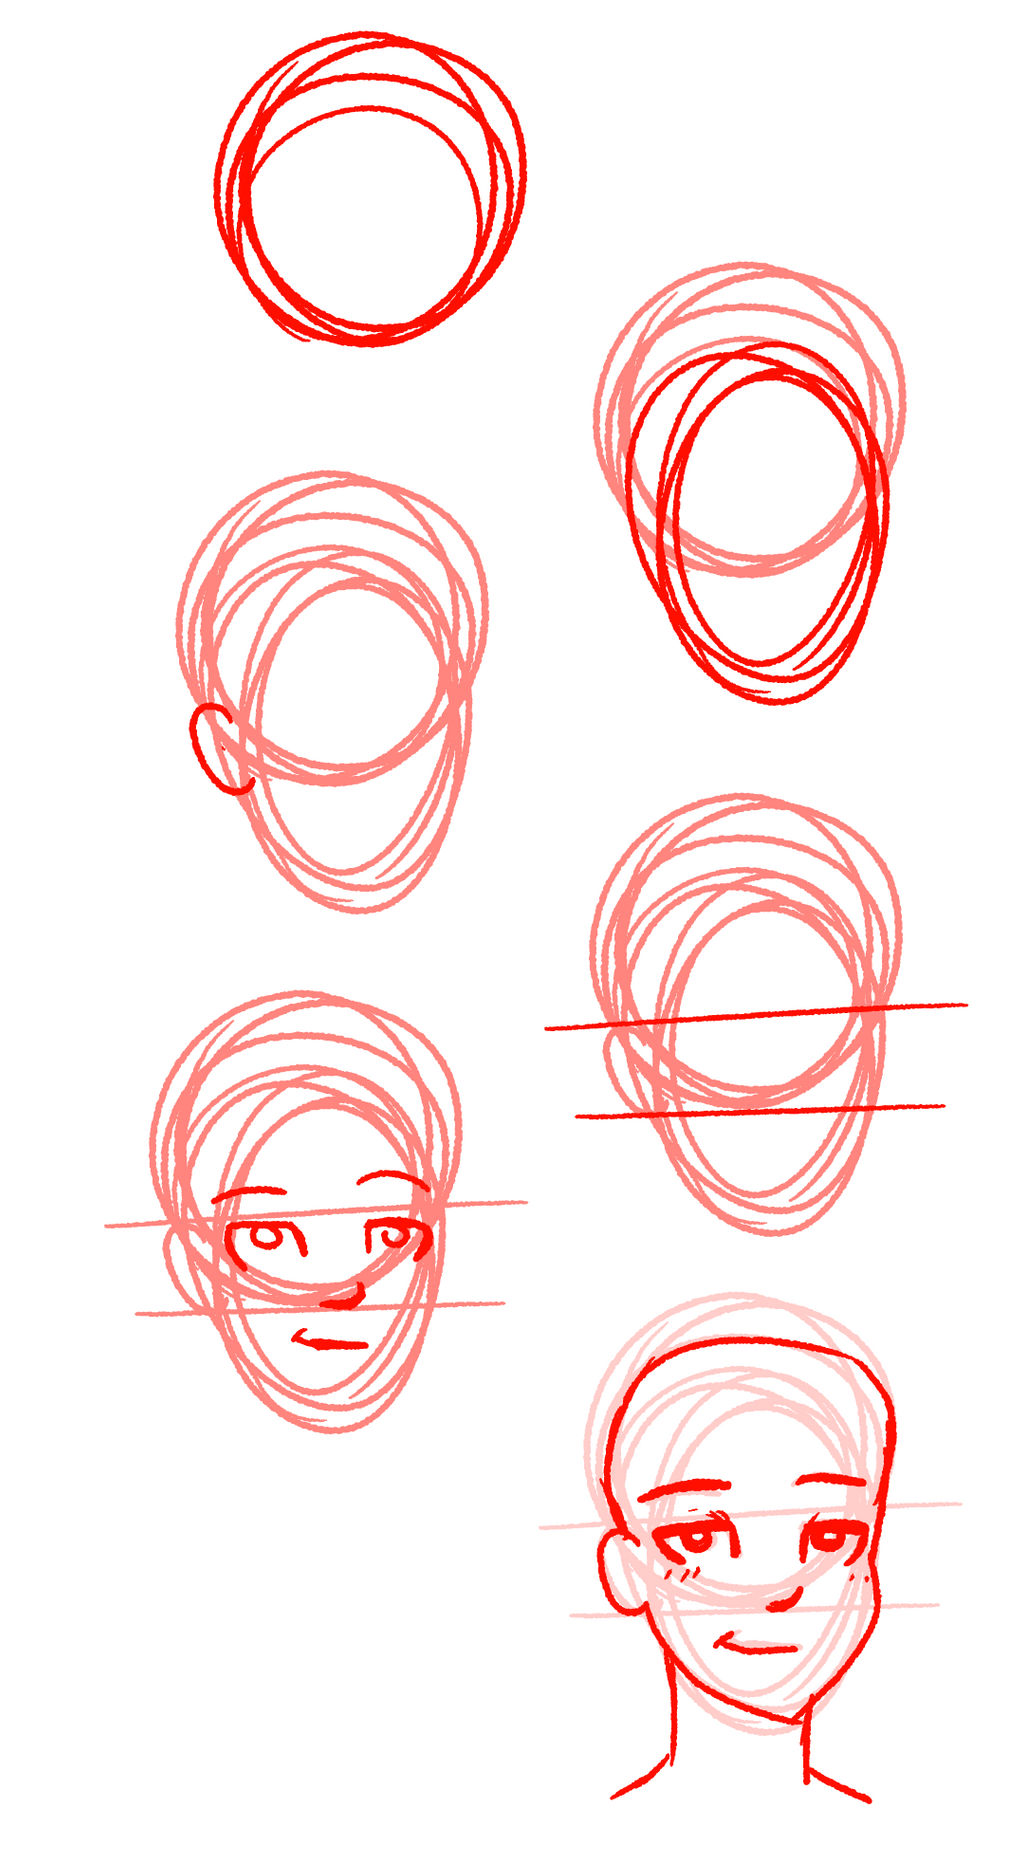 TUTORIAL - How I draw faces by Cheschire-Kaat